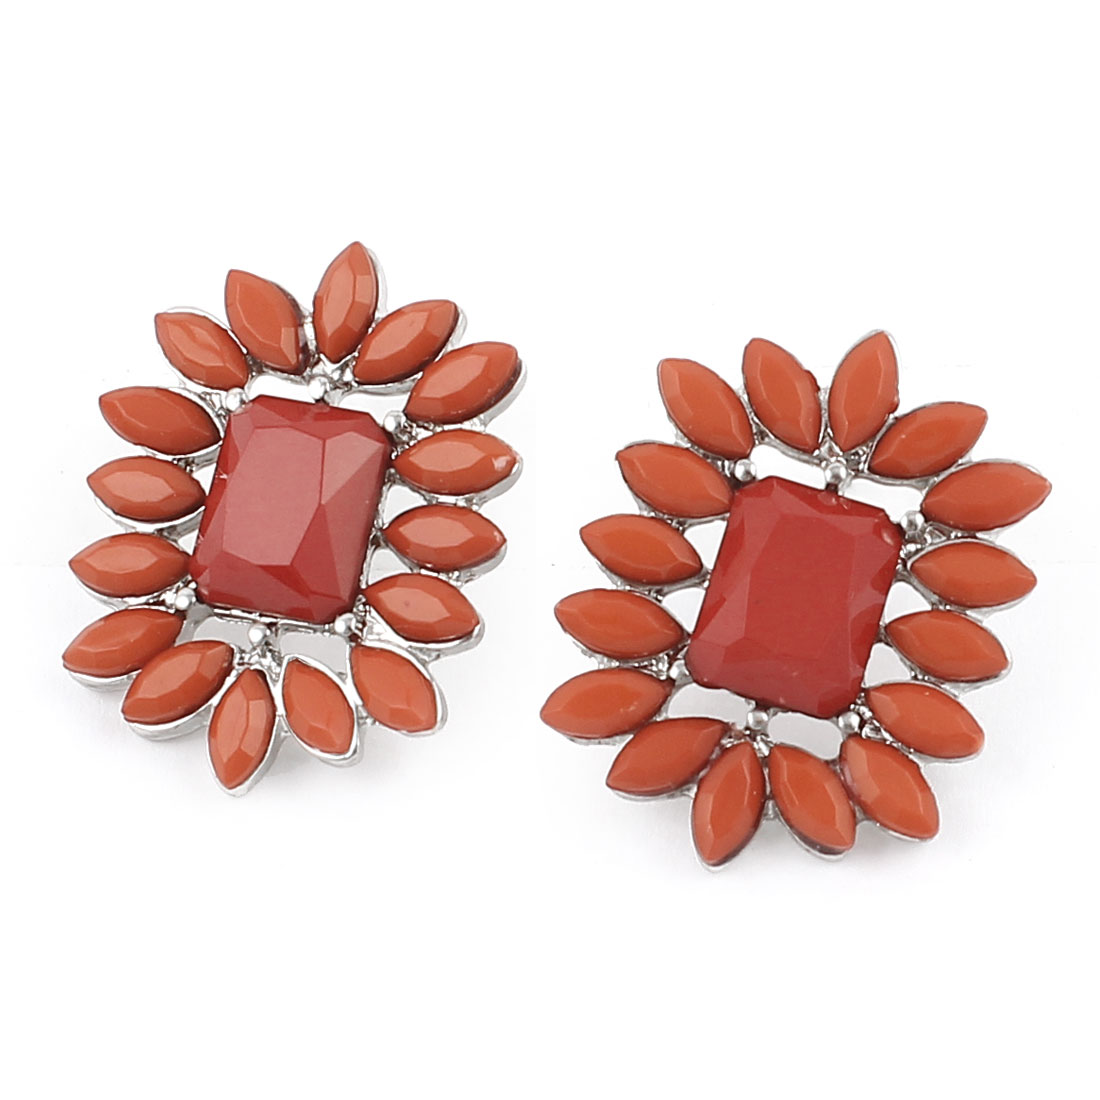 Pair Faux Crystal Inlaid Flower Shaped Red Bronze Tone Stud Earrings